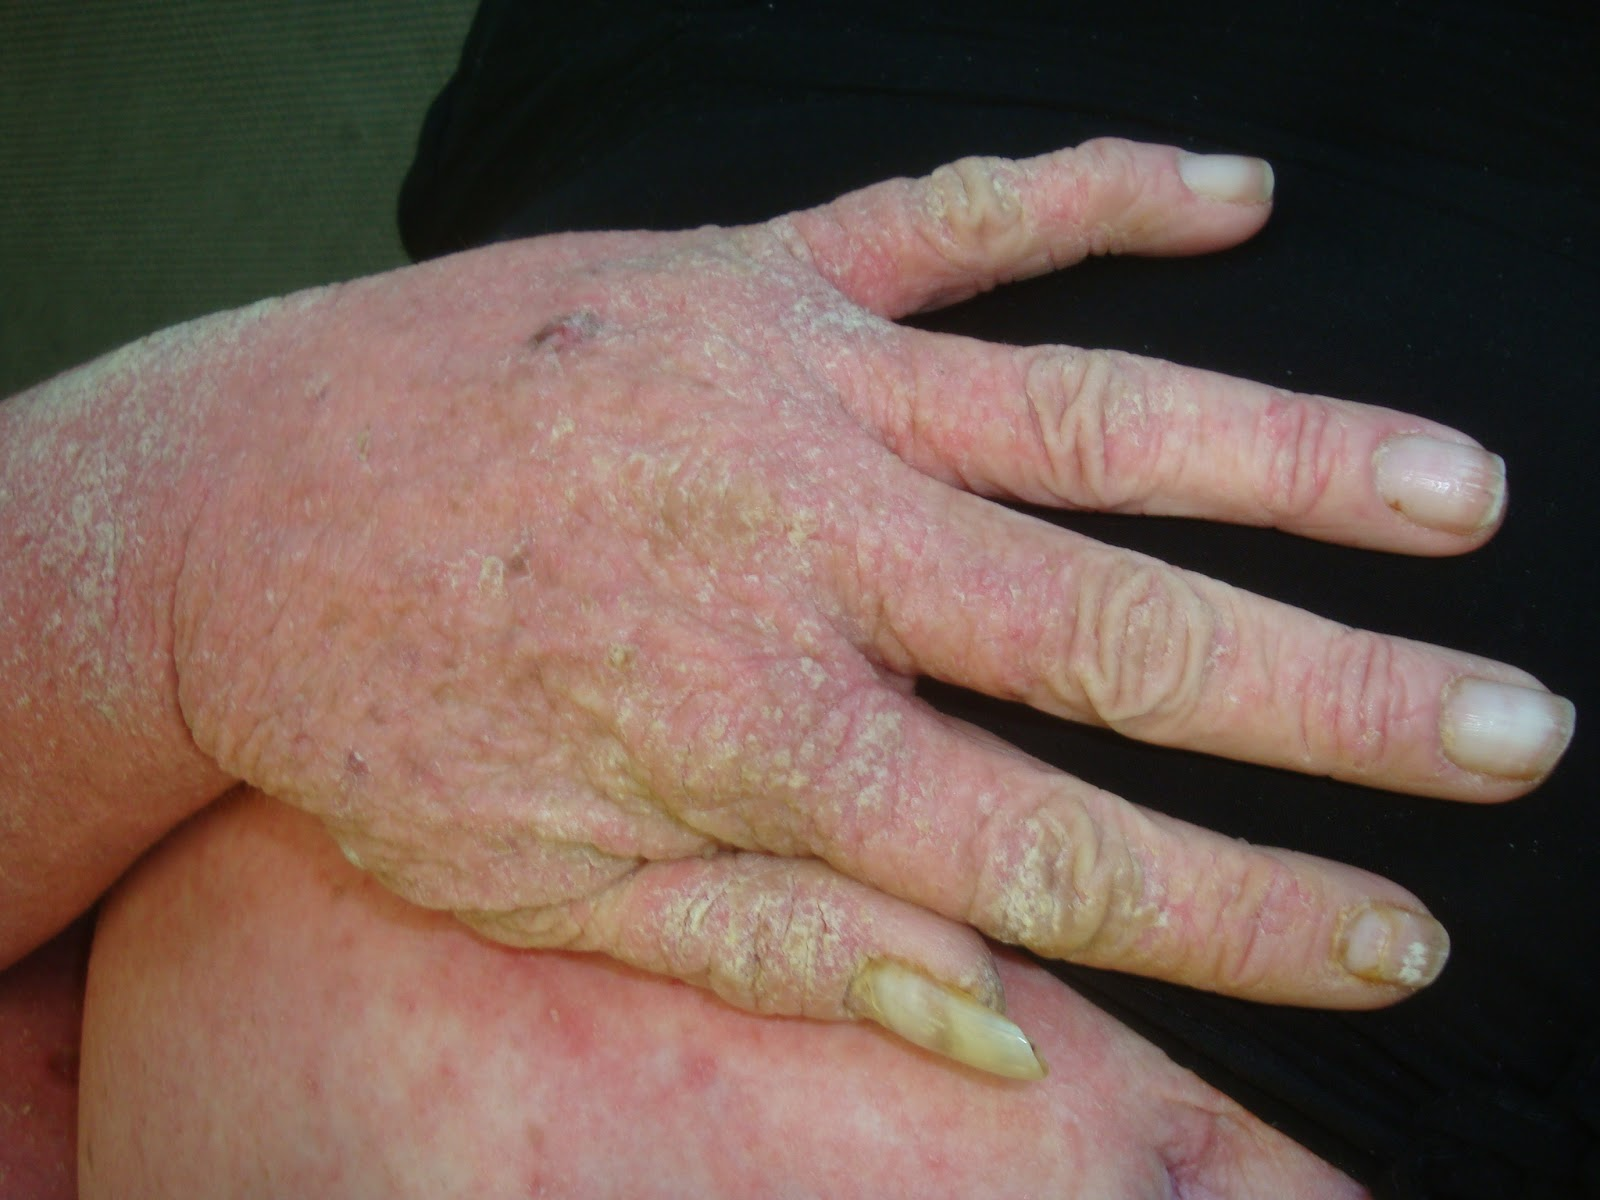 Scabies Symptoms, Treatment, Causes - MedicineNet